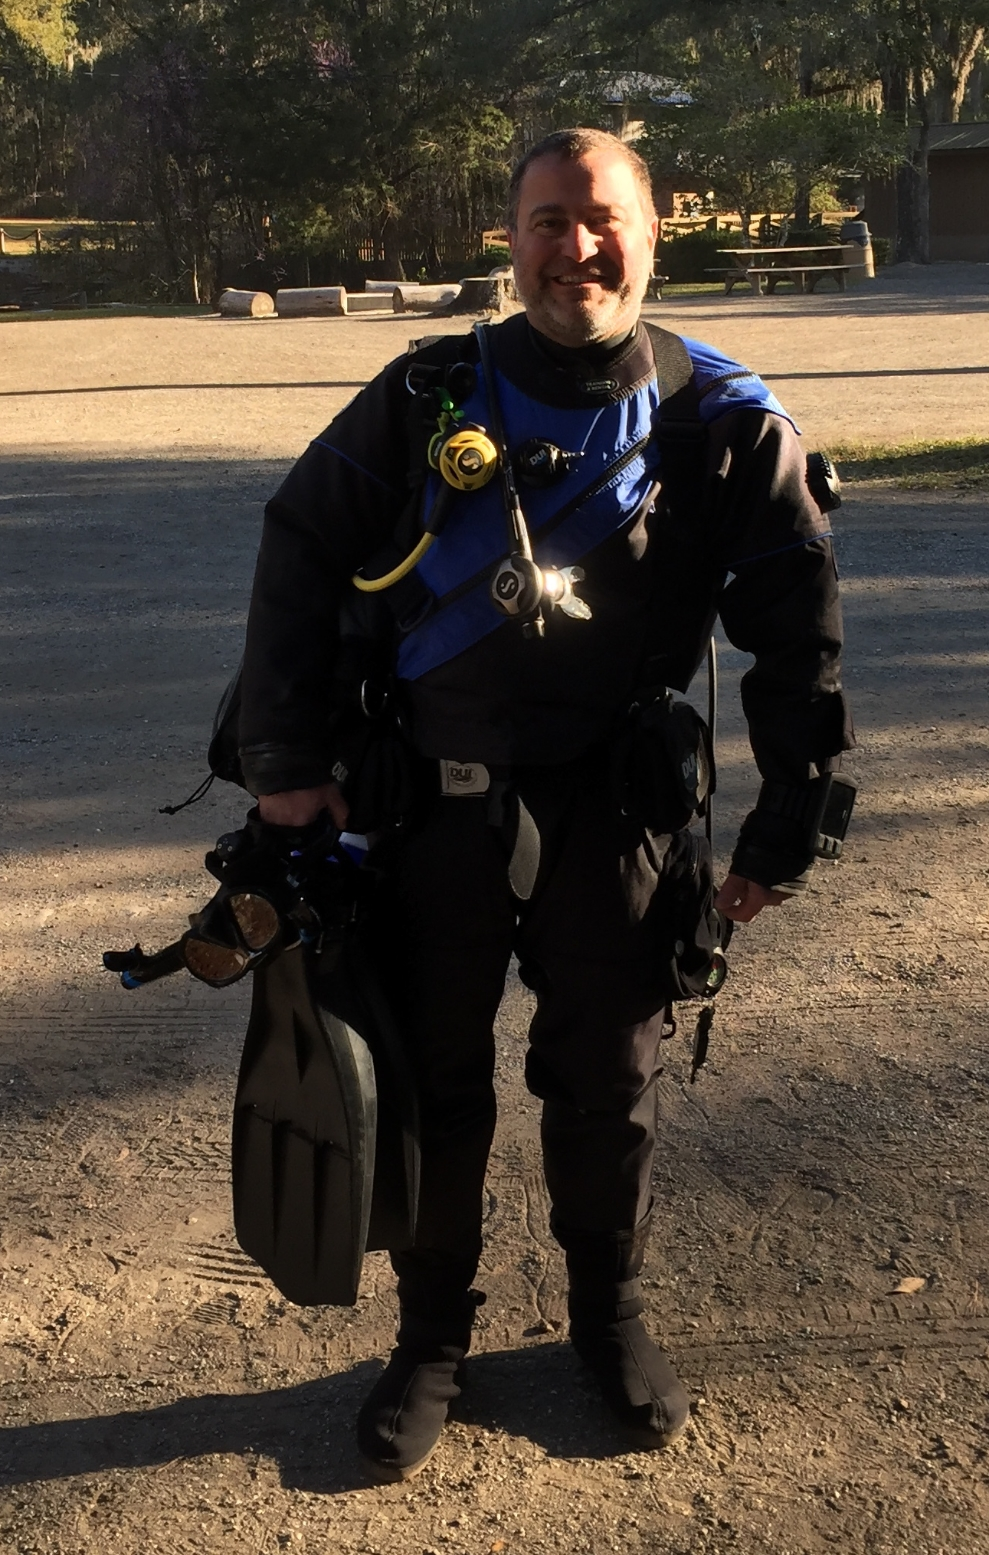 Brian Rickman - Owner and PADI MASTER INSTRUCTOR